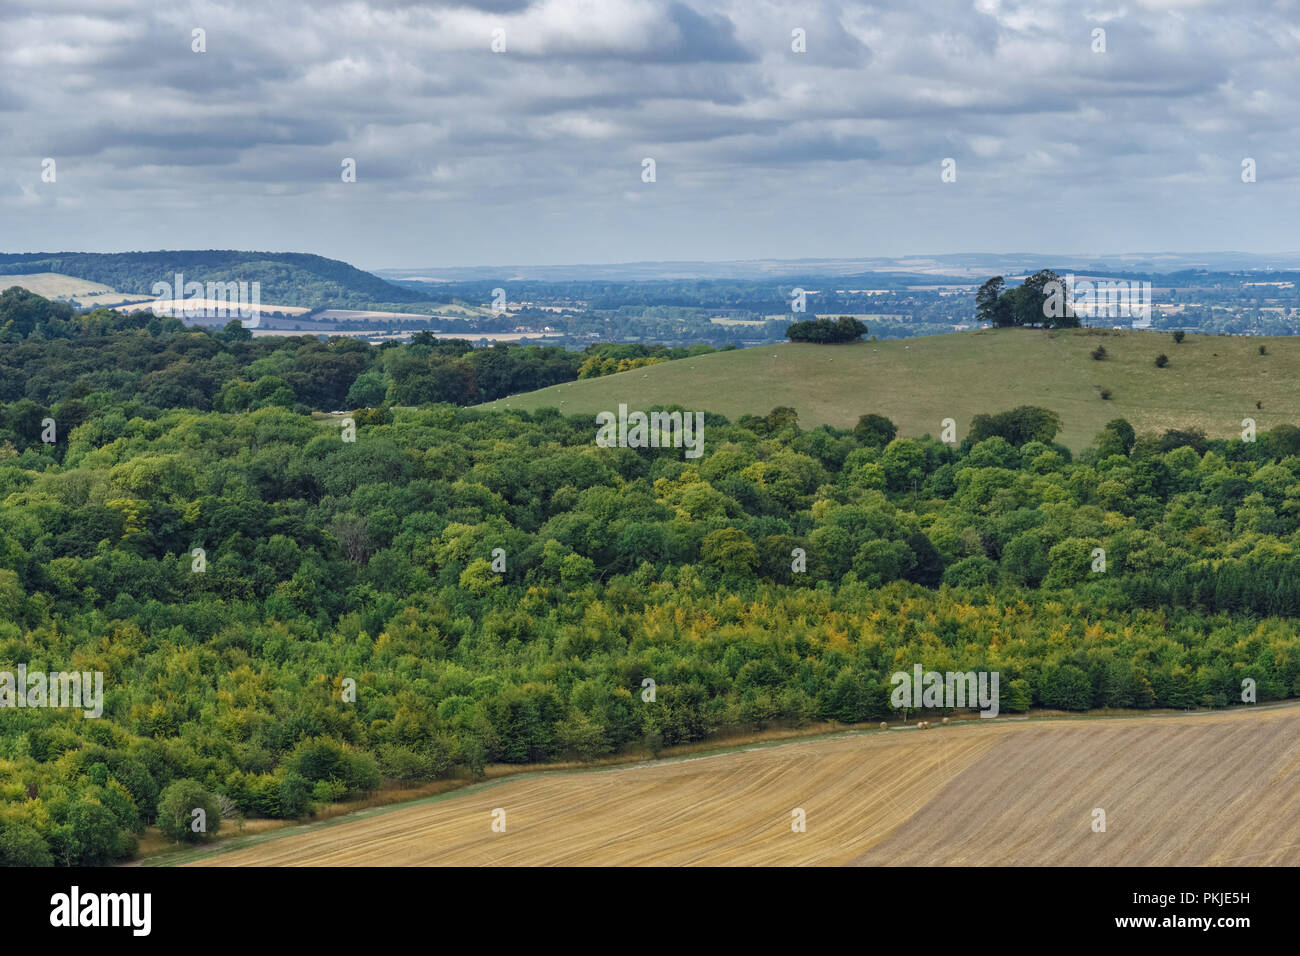 View from the Coombe Hill in The Chilterns Buckinghamshire, England United Kingdom UK - Stock Image